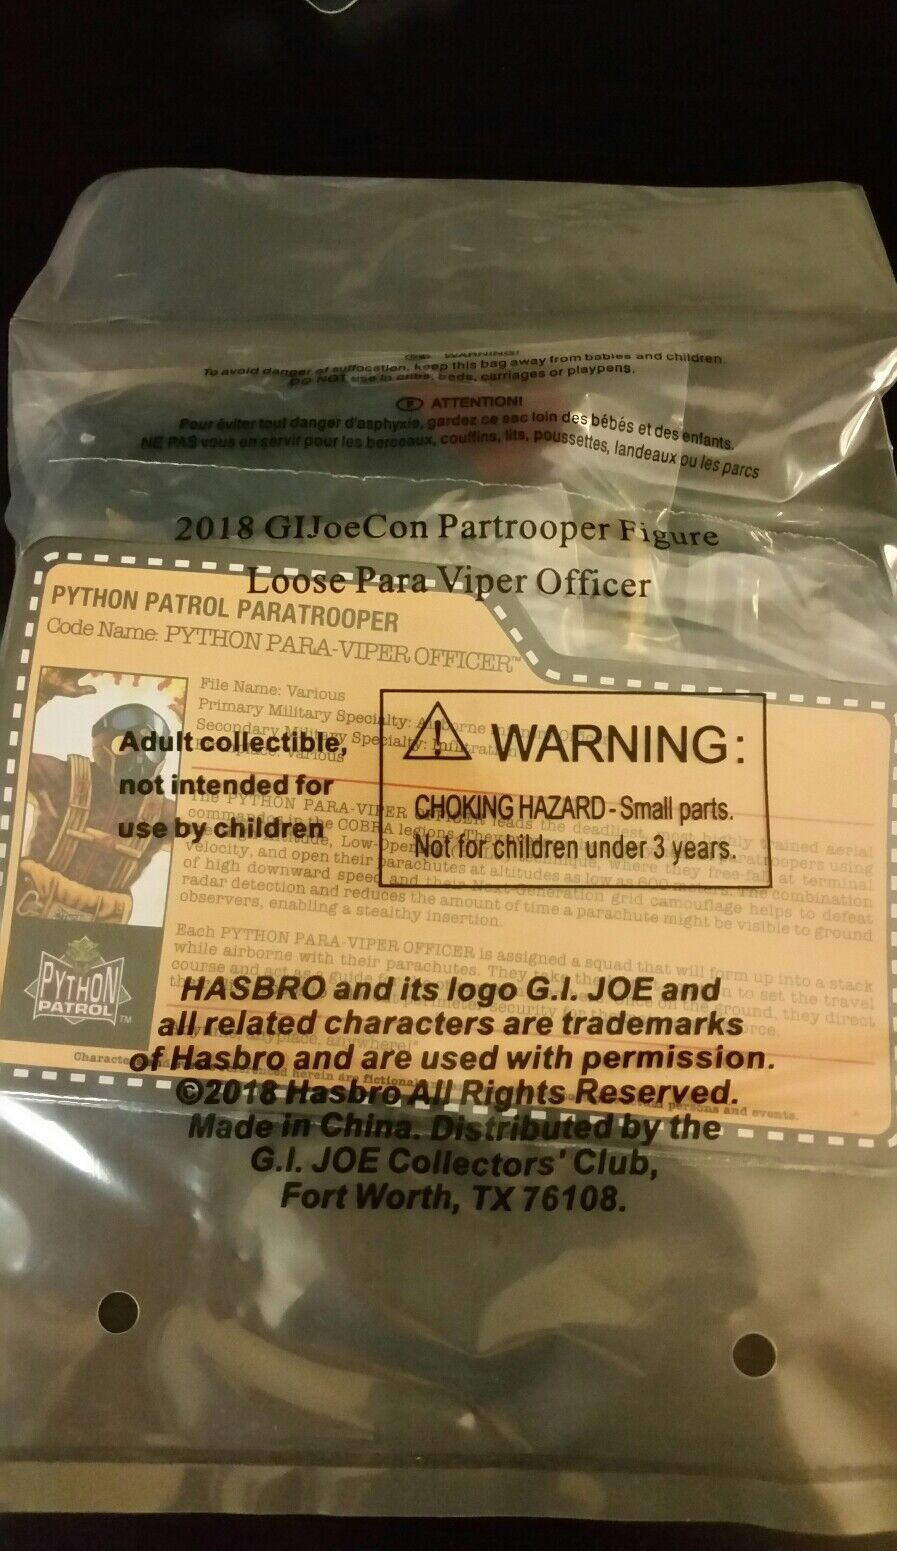 PYTHON PARA VIPER OFFICER PARATROOPER Gi joe convention 2018 exclusive MISB